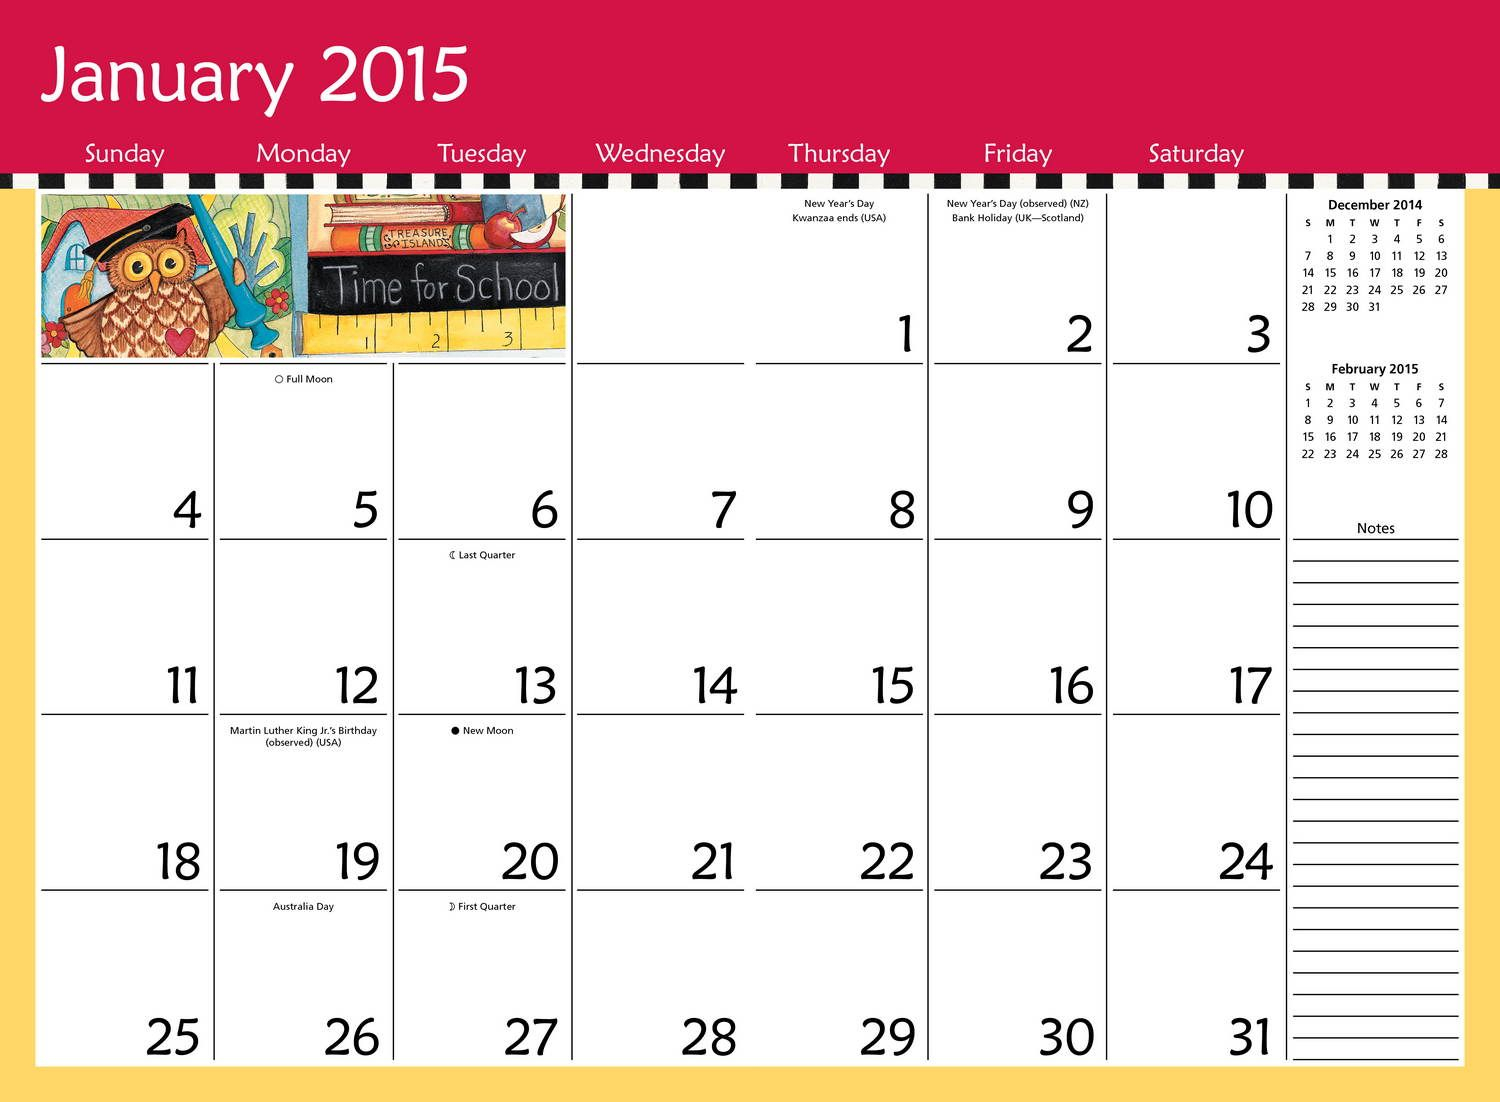 2015 Monthly Calendar With Holidays Printable | Projects To with regard to Printable Monthly Calendar 2015